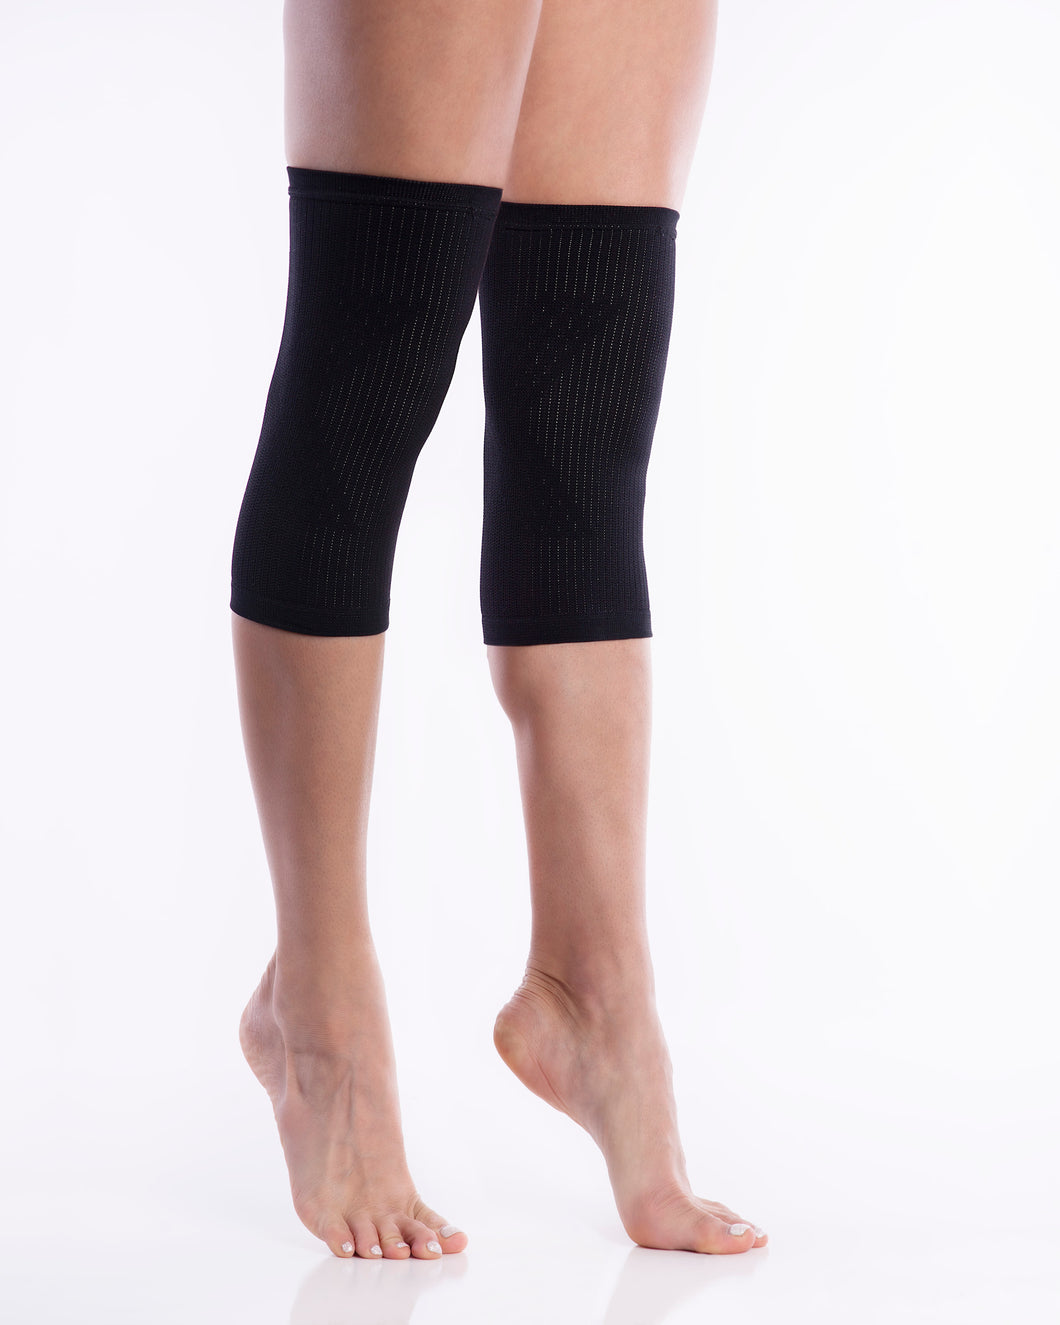 # 1 Knee Compression Support Sleeve / Brace - Joint Pain Relief - Injury Recovery - For MEN and WOMEN - 1 Pair.